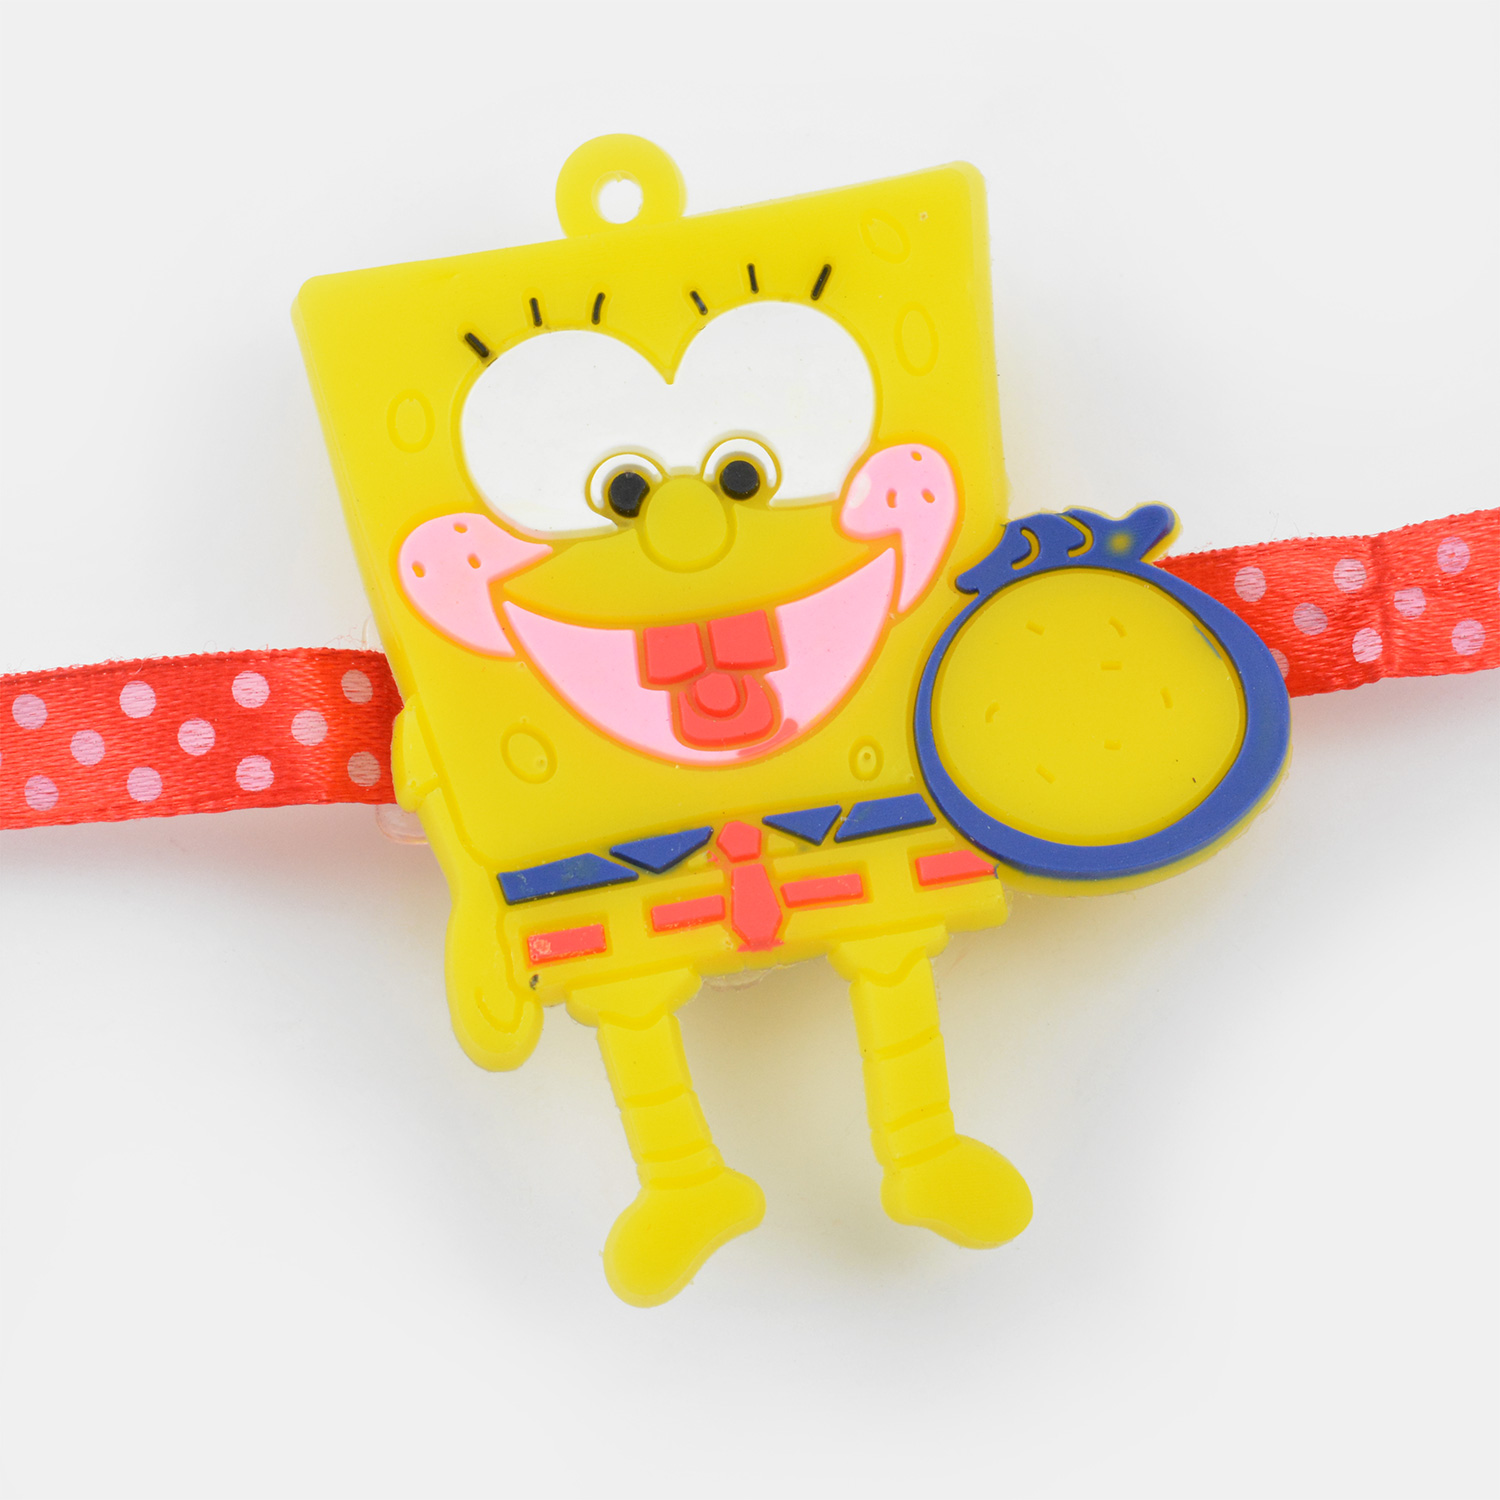 Funny Yellow Smiling Cartoon Rakhi for Kids